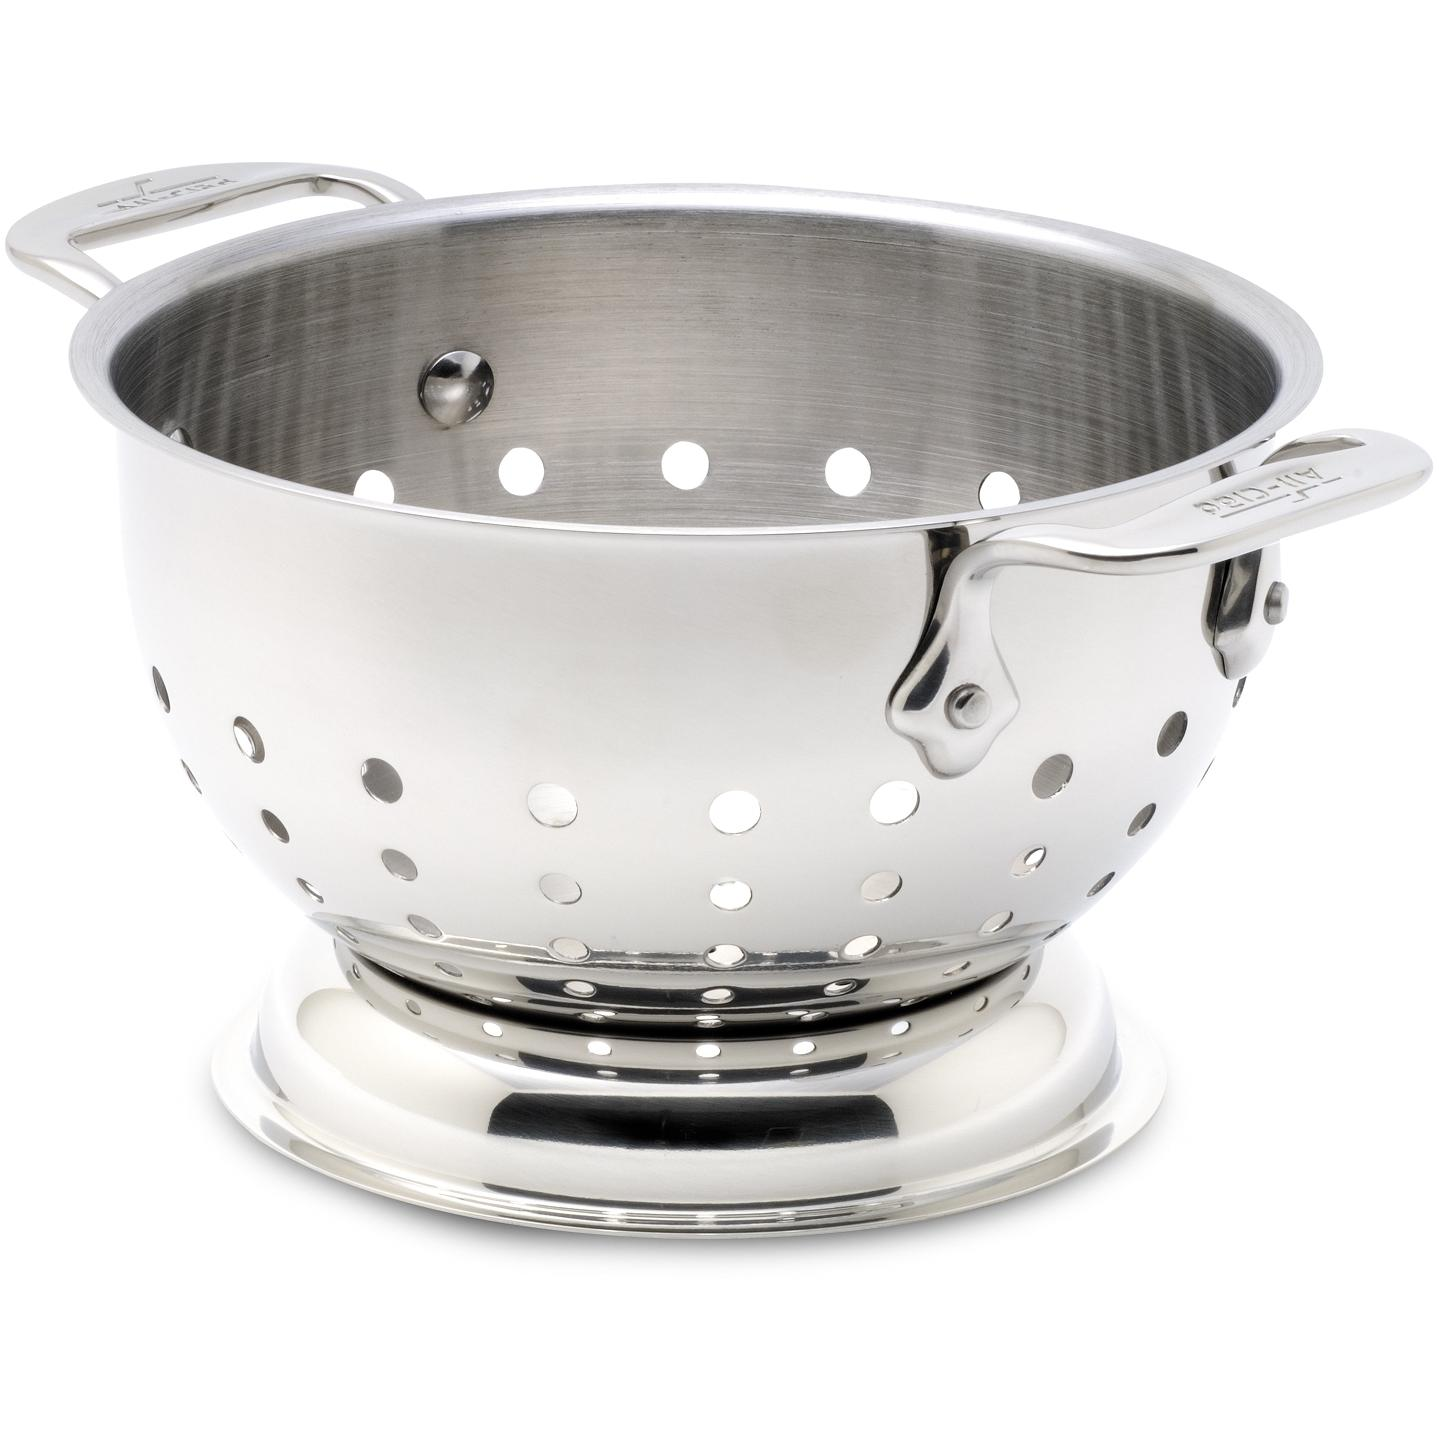 All-Clad Stainless 1.5-Quart Colander